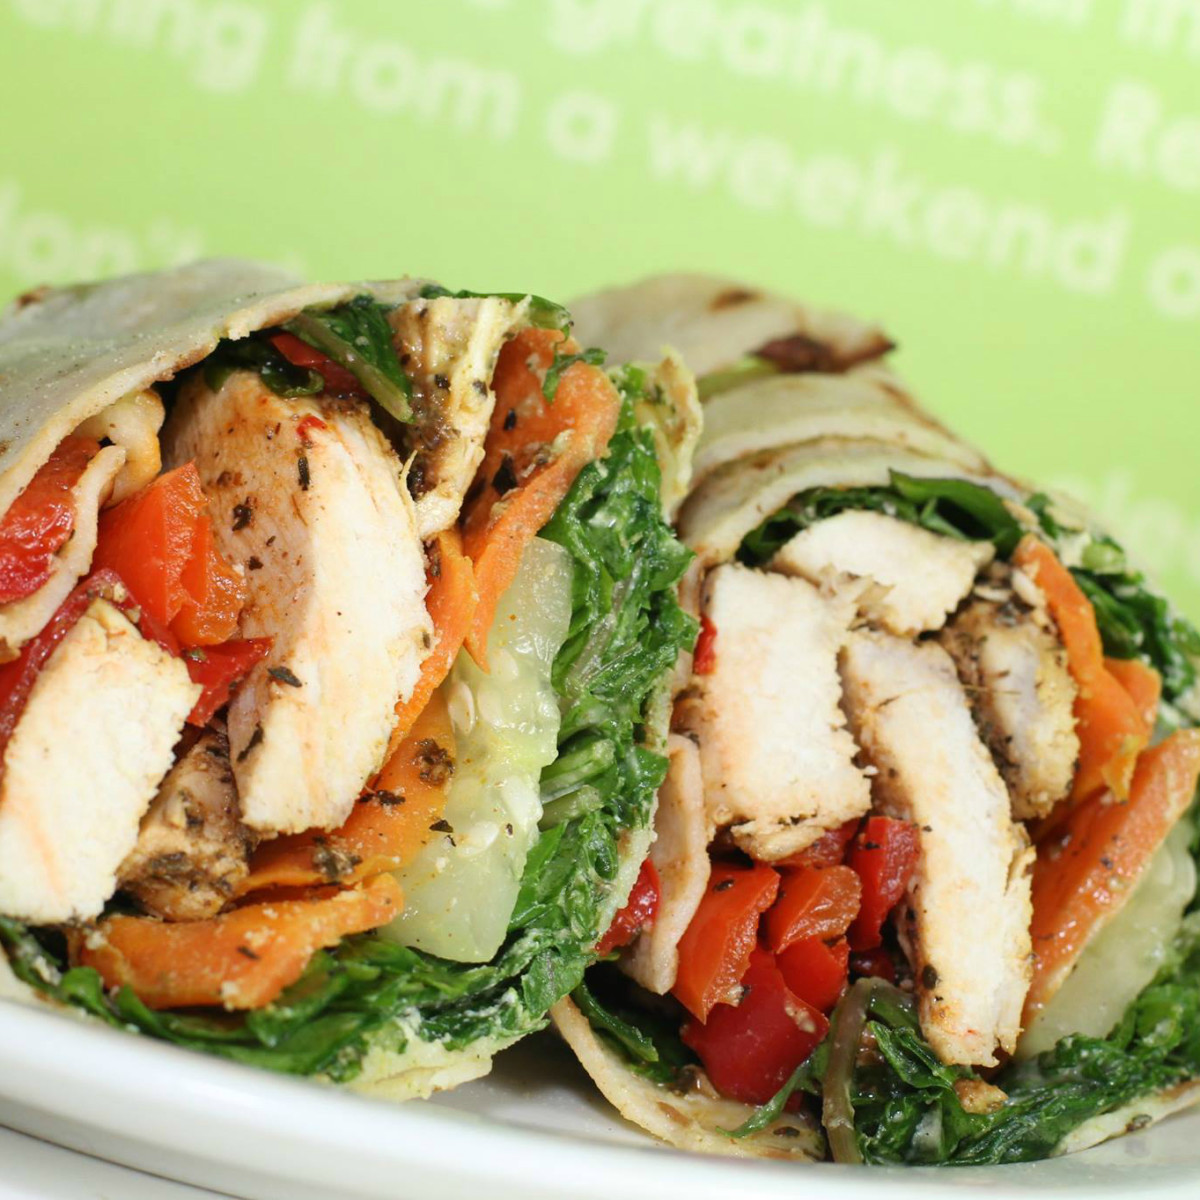 Daily Juice Cafe restaurant chicken wrap